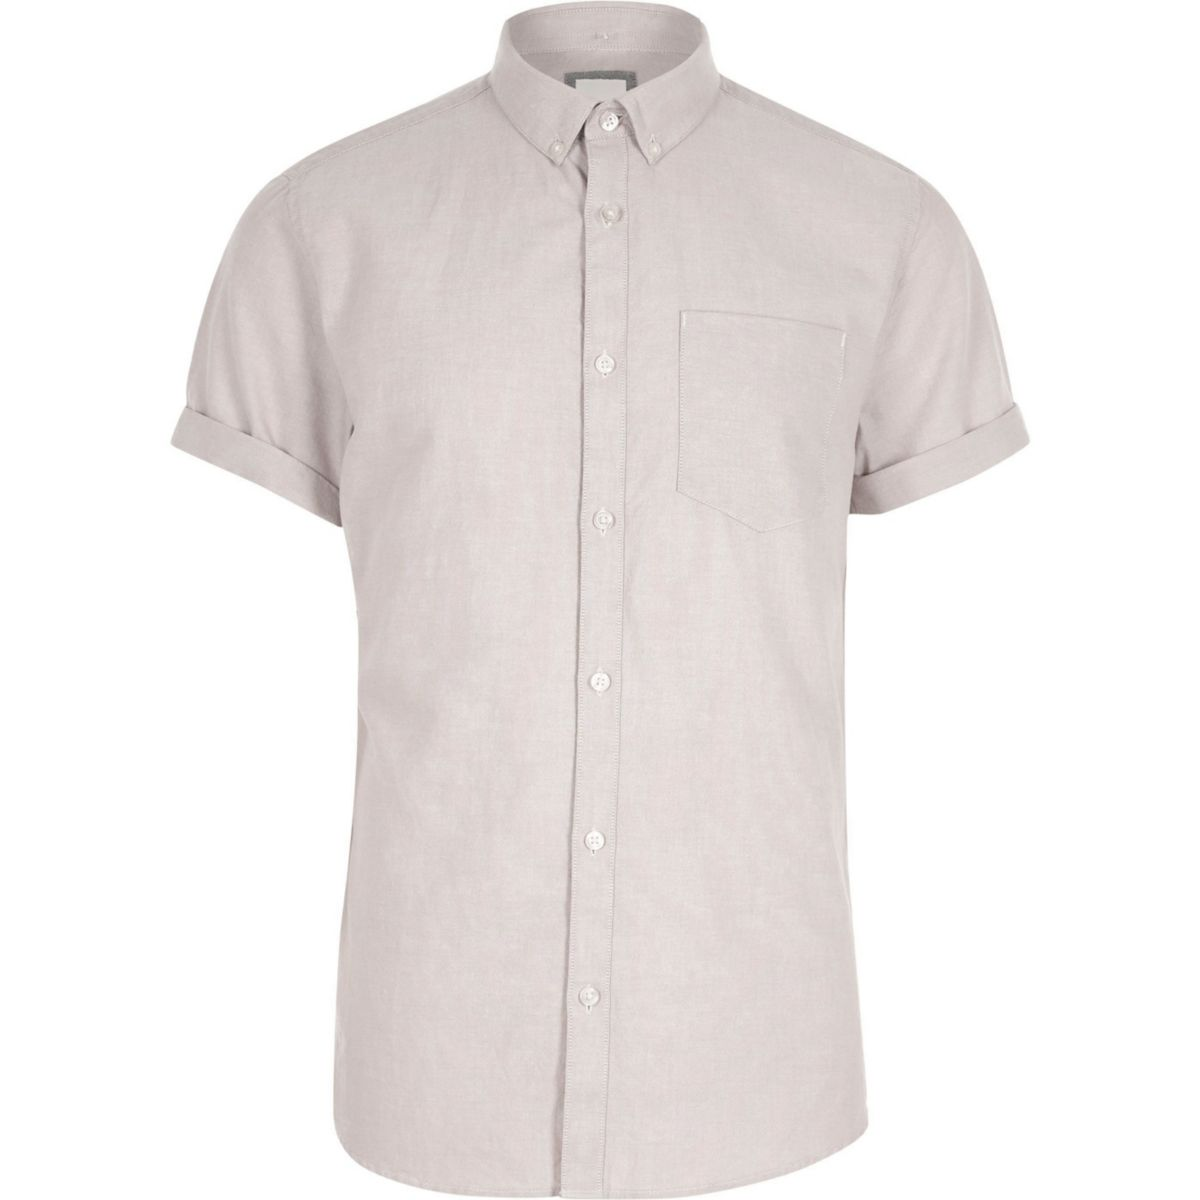 Cream short sleeve button-down casual shirt